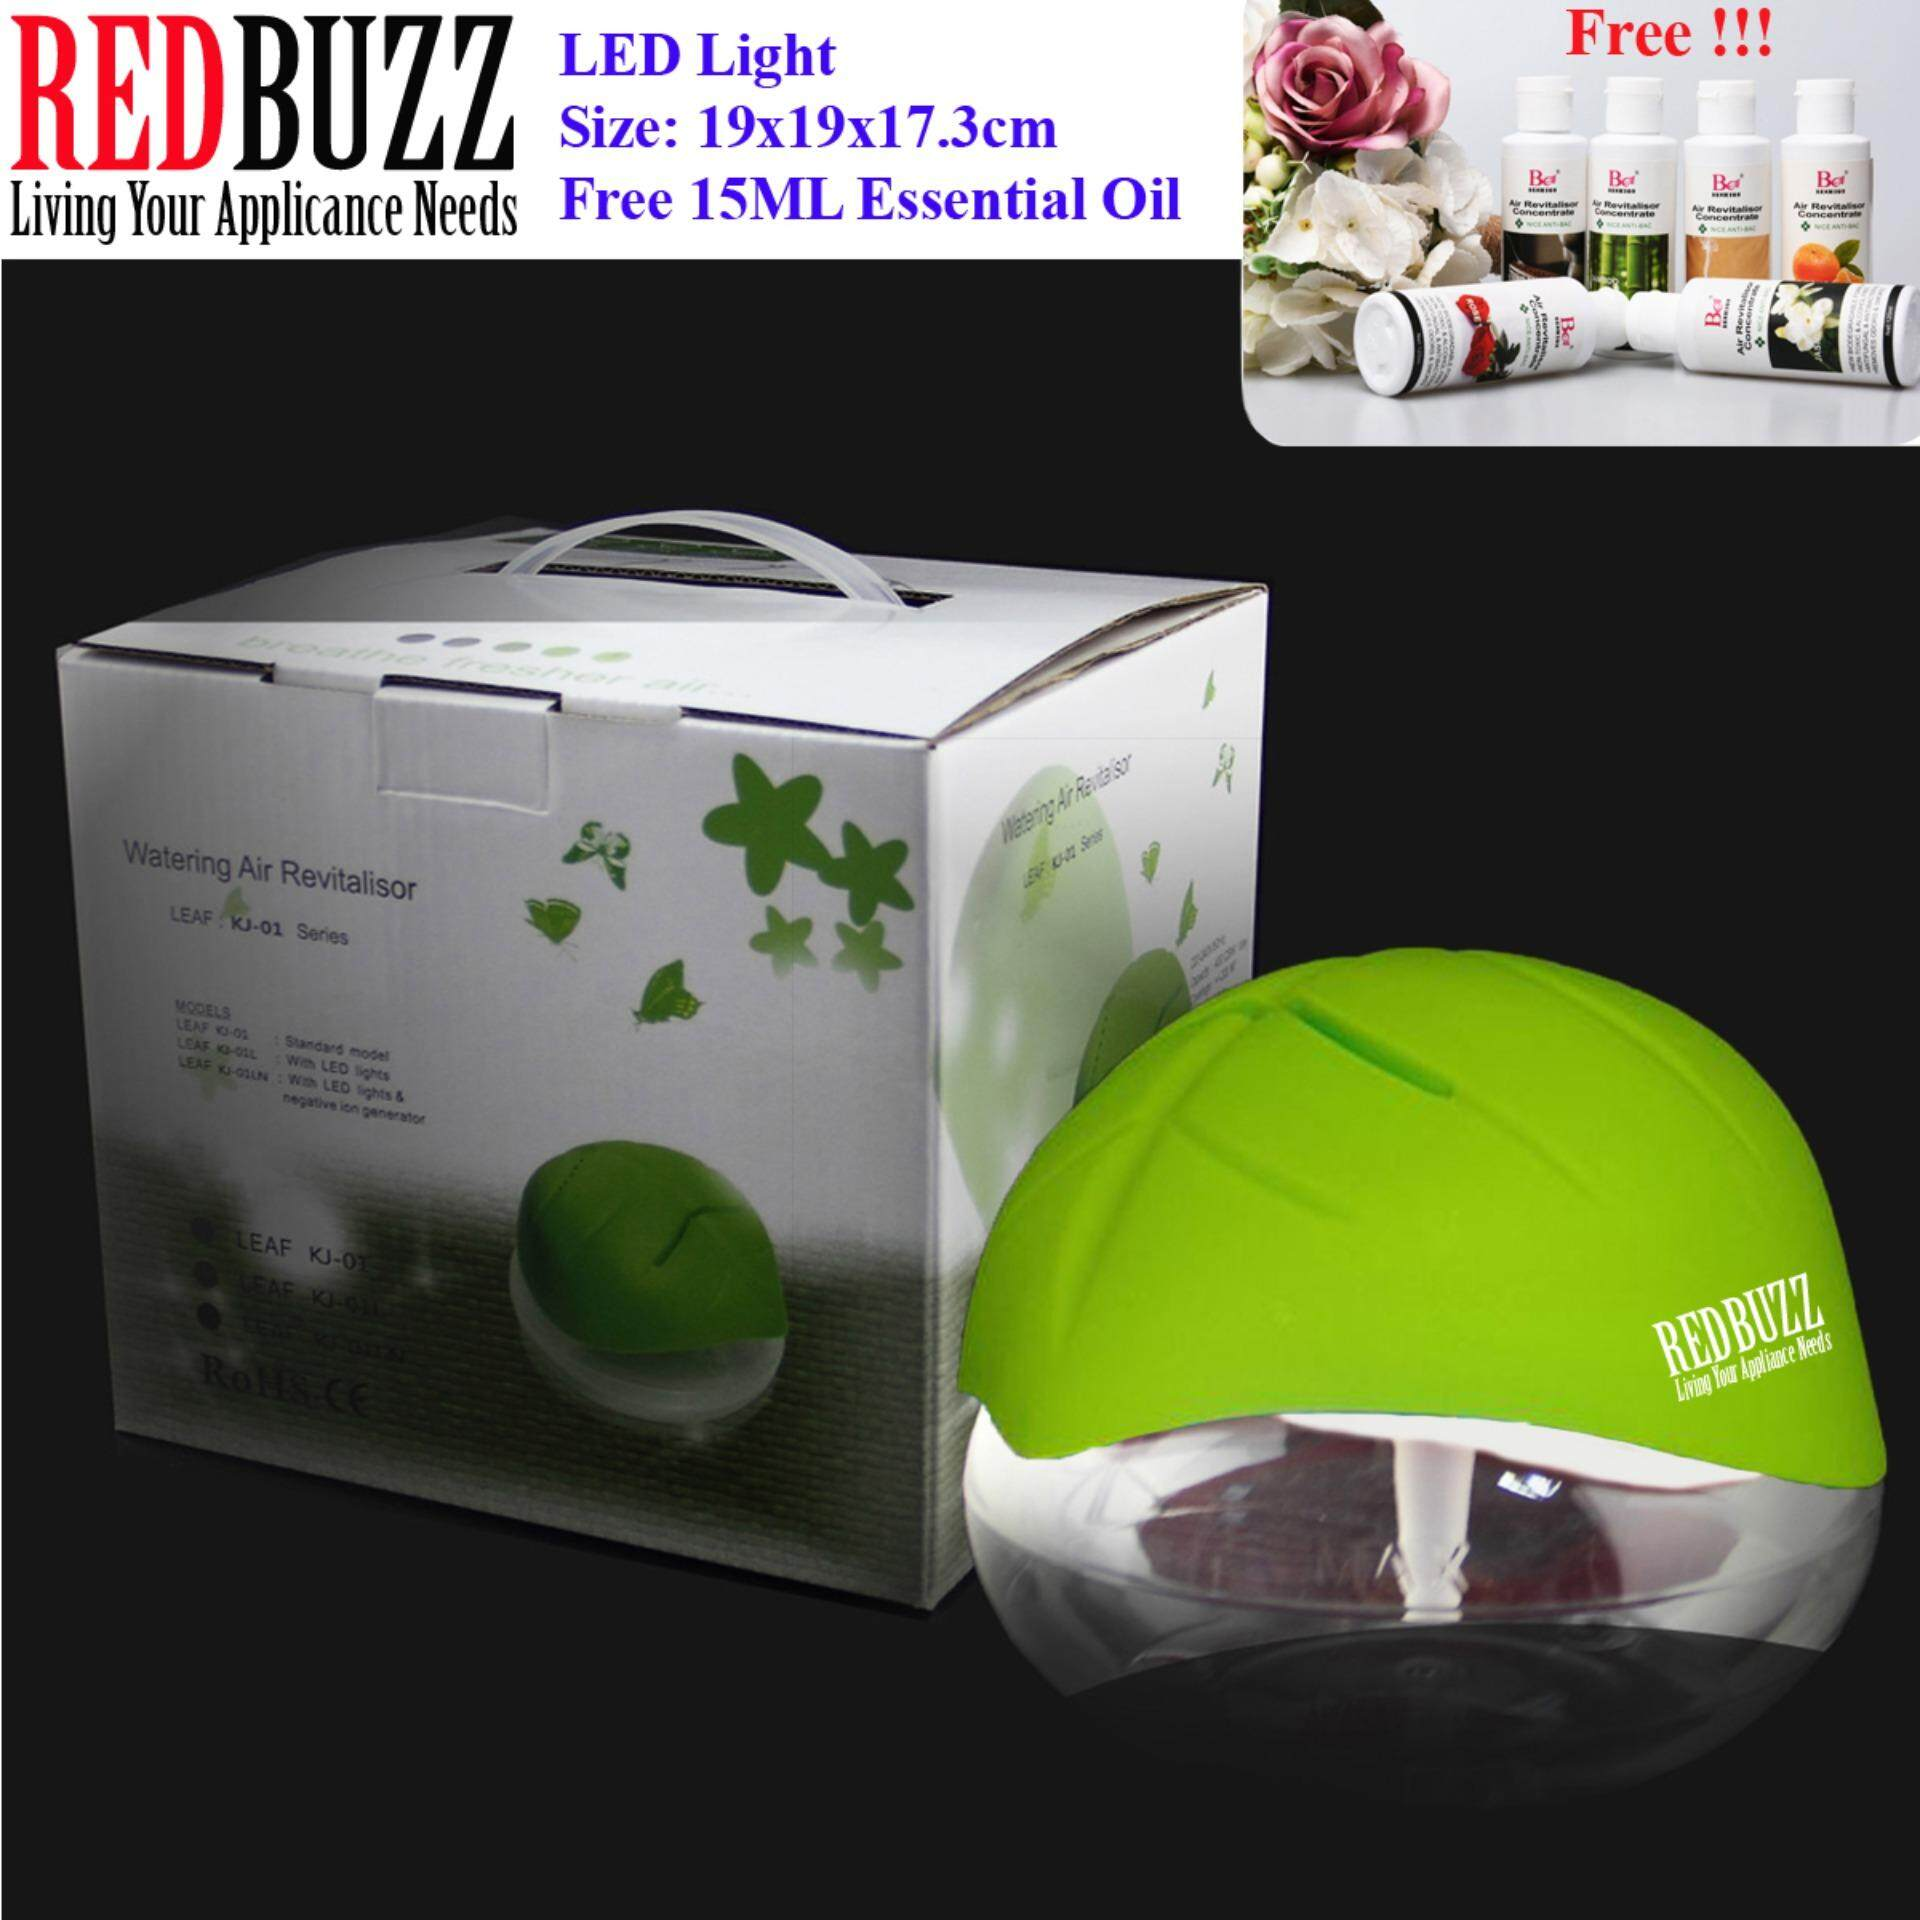 REDBUZZ Watering Air Revitalisor Fresh Air Purifier Aroma Diffuser with LED light + Free 15ML Essential Oil (Green Color)